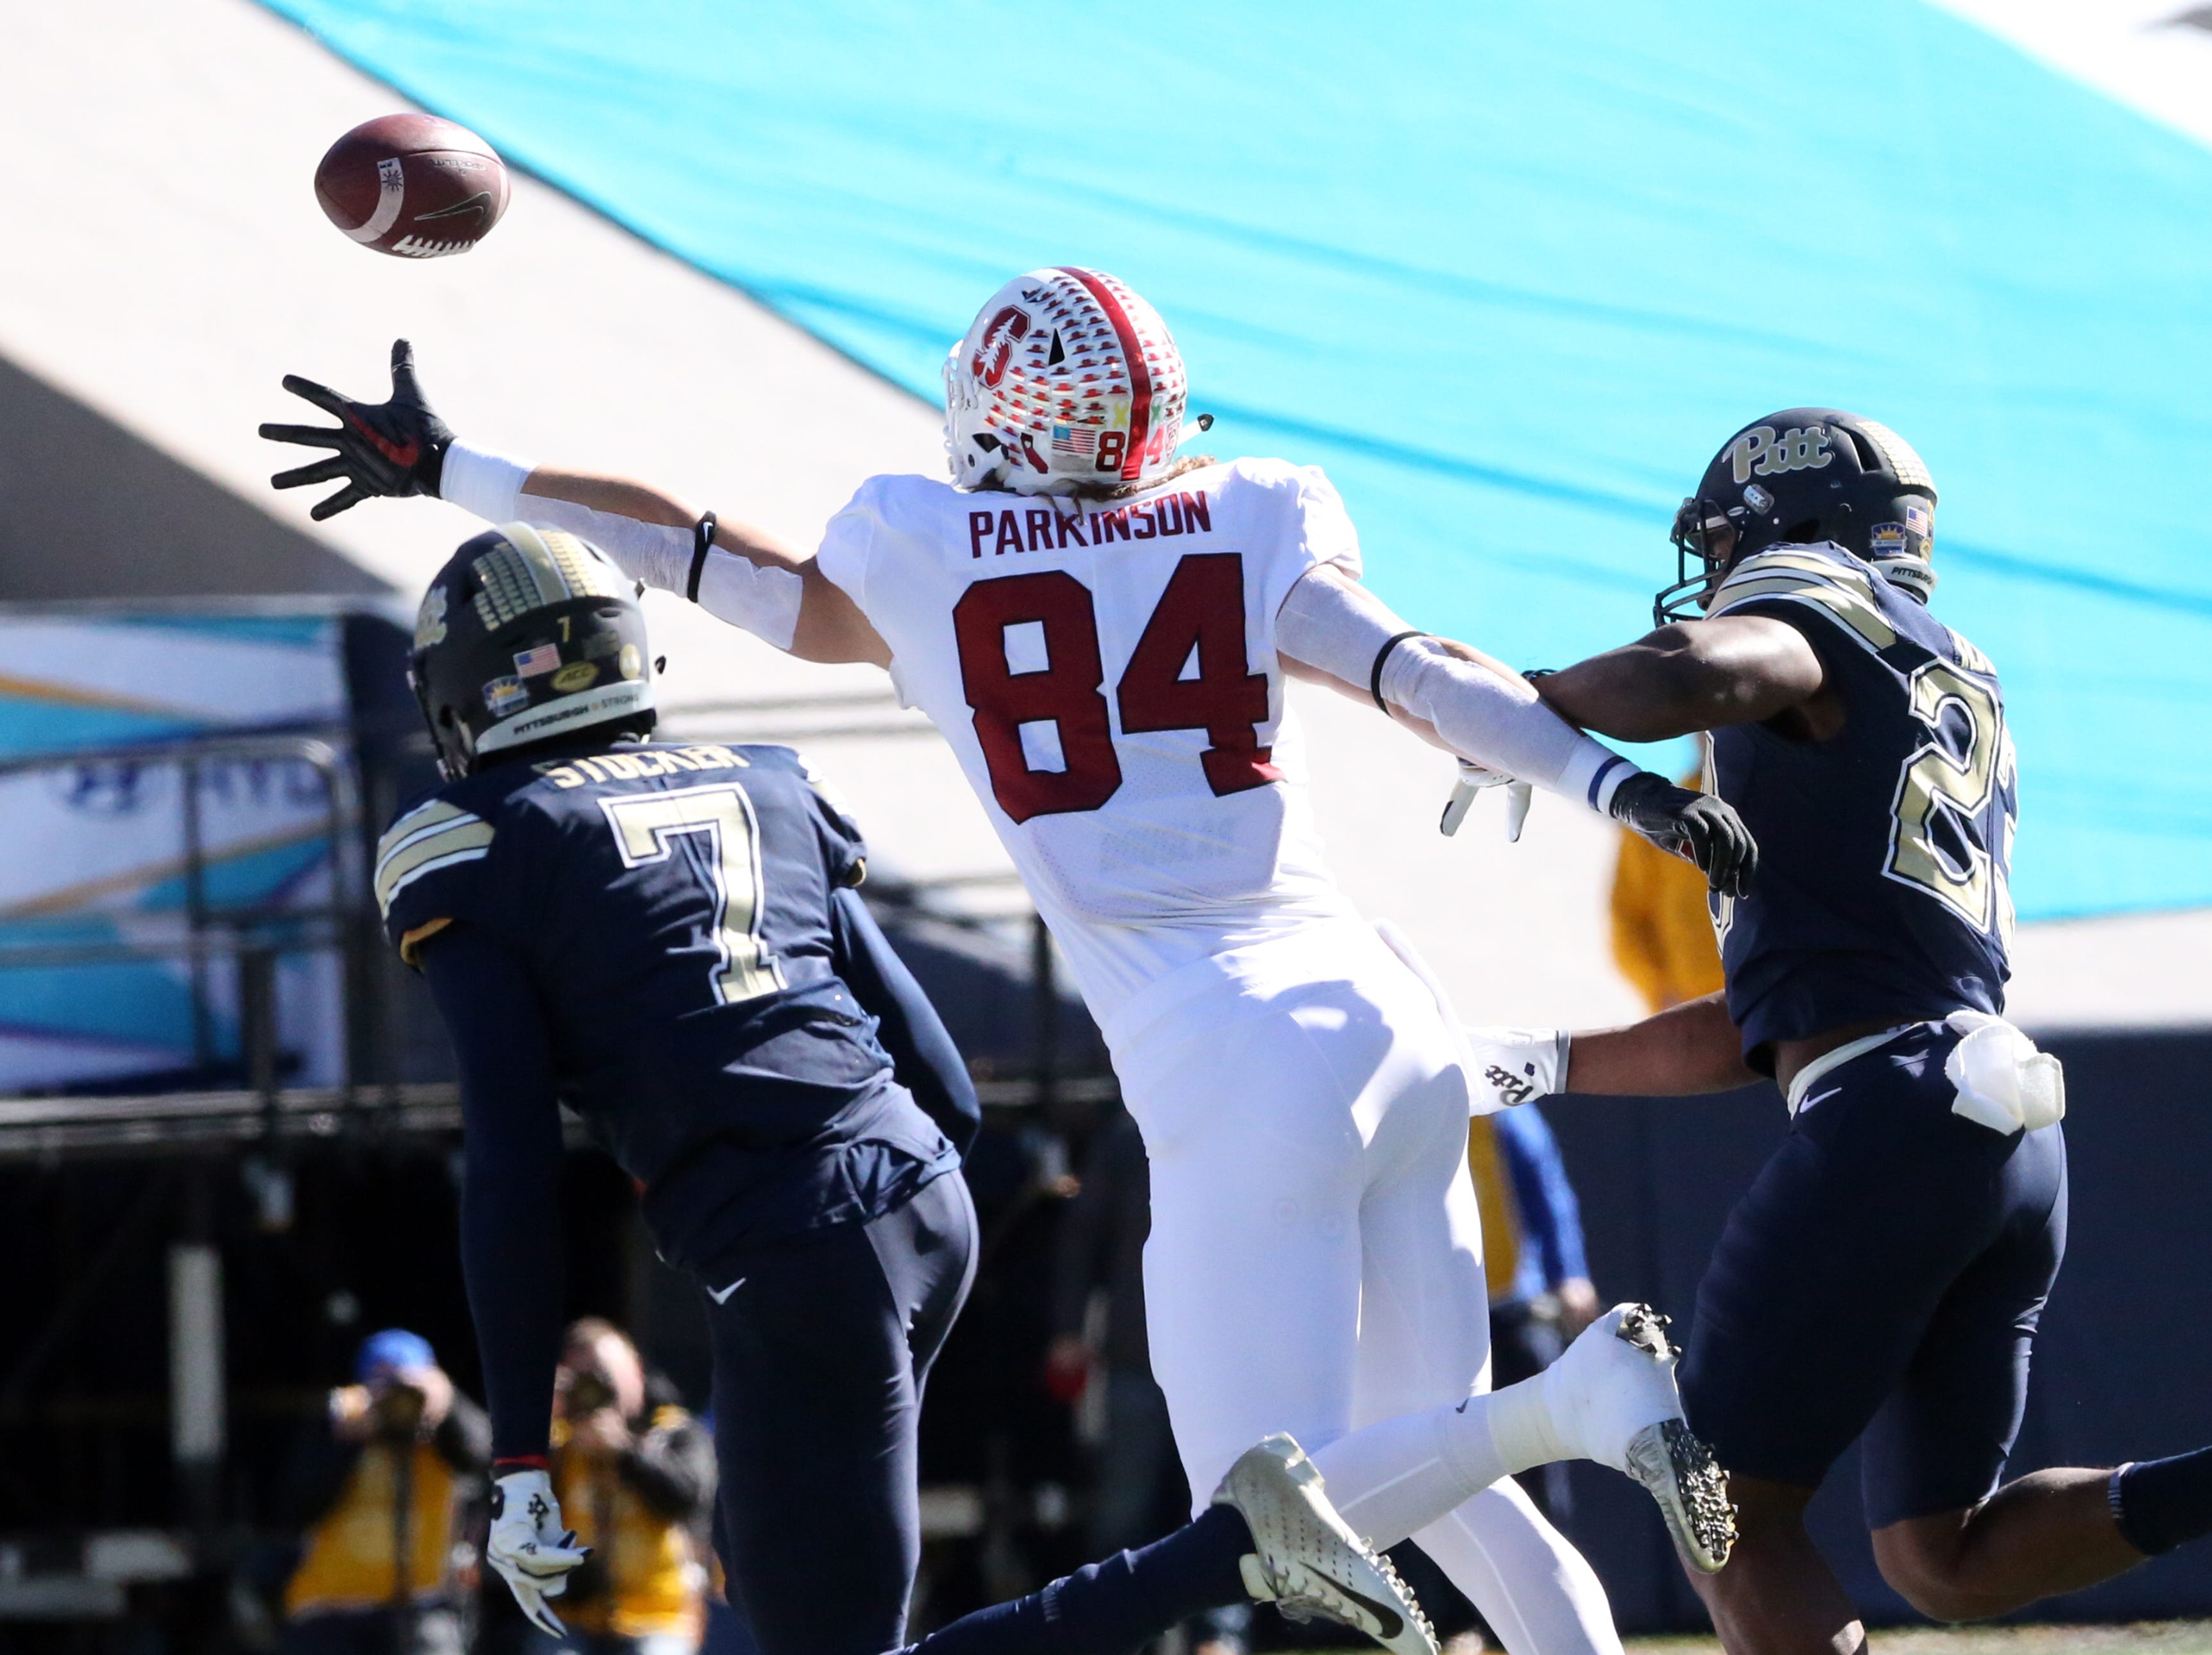 Colby Parkinson, 84, of Stanford reaches for an over thrown pass Monday.